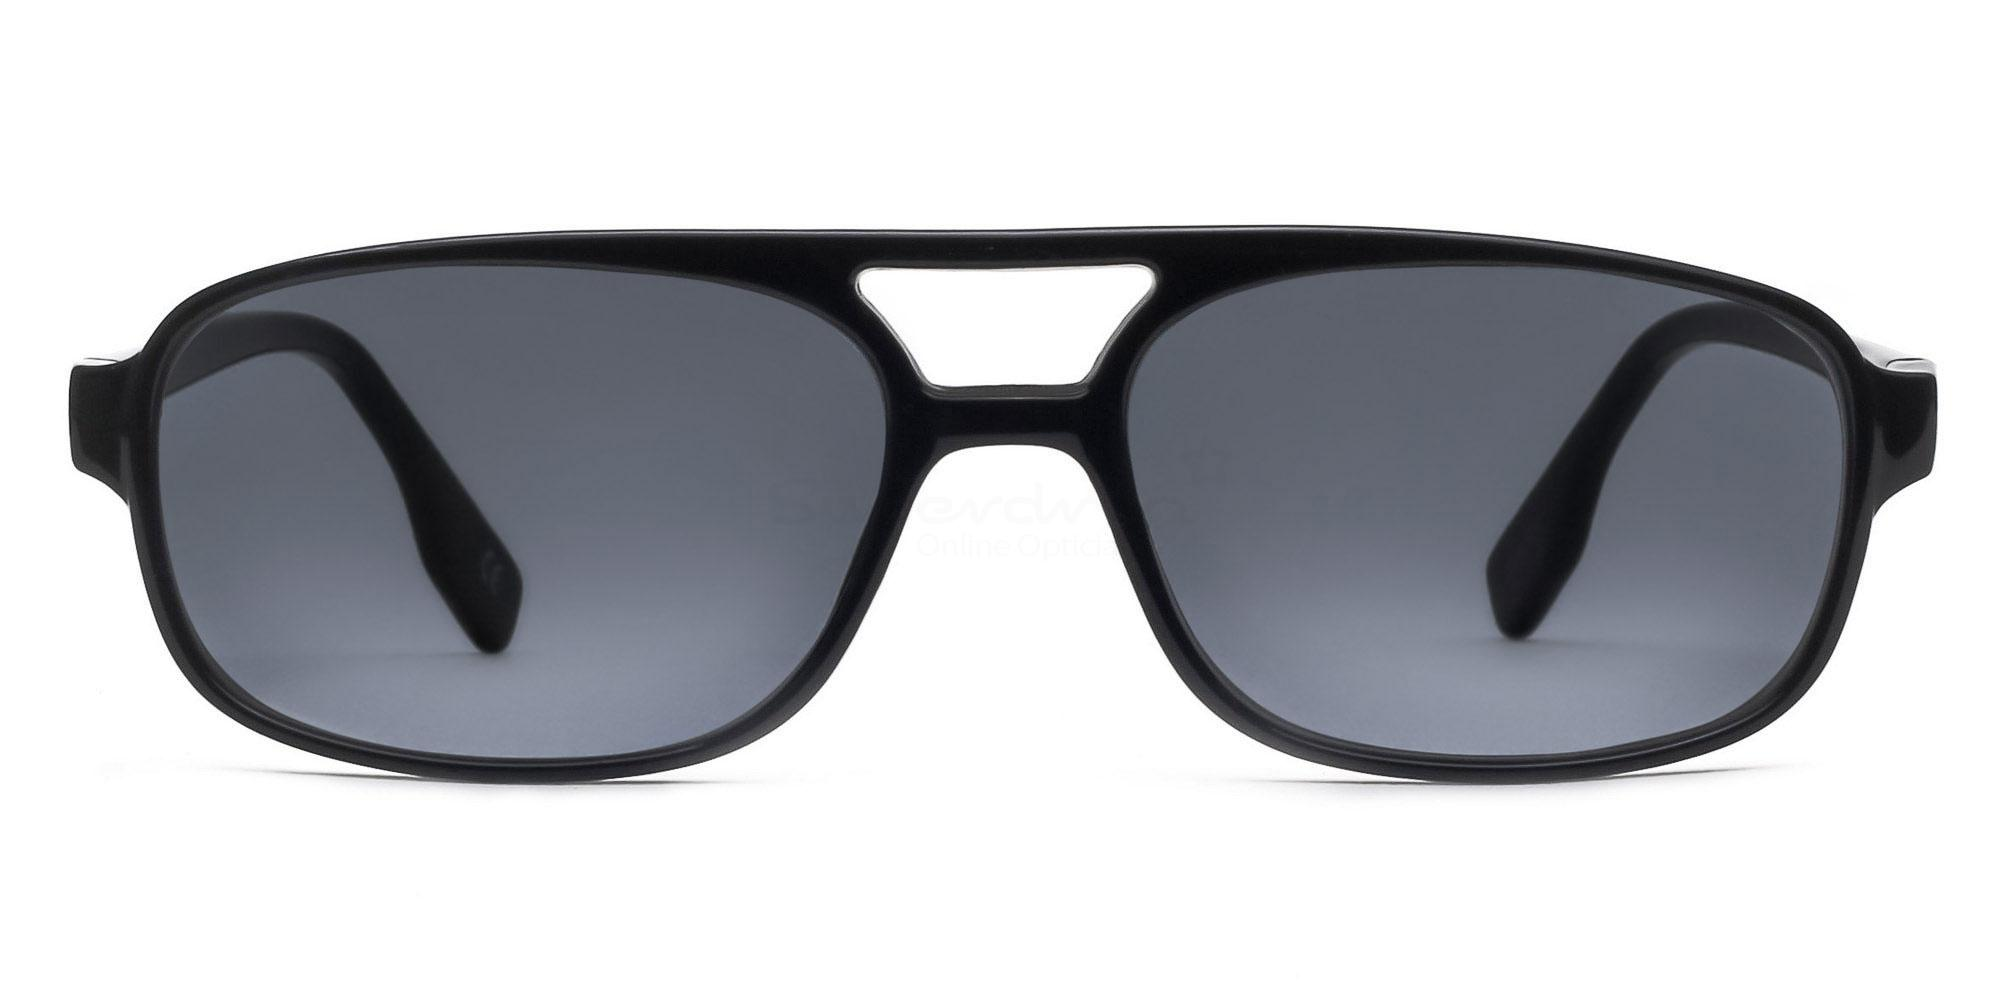 C01 Dark Grey P2395 - Black (Sunglasses) Sunglasses, Indium